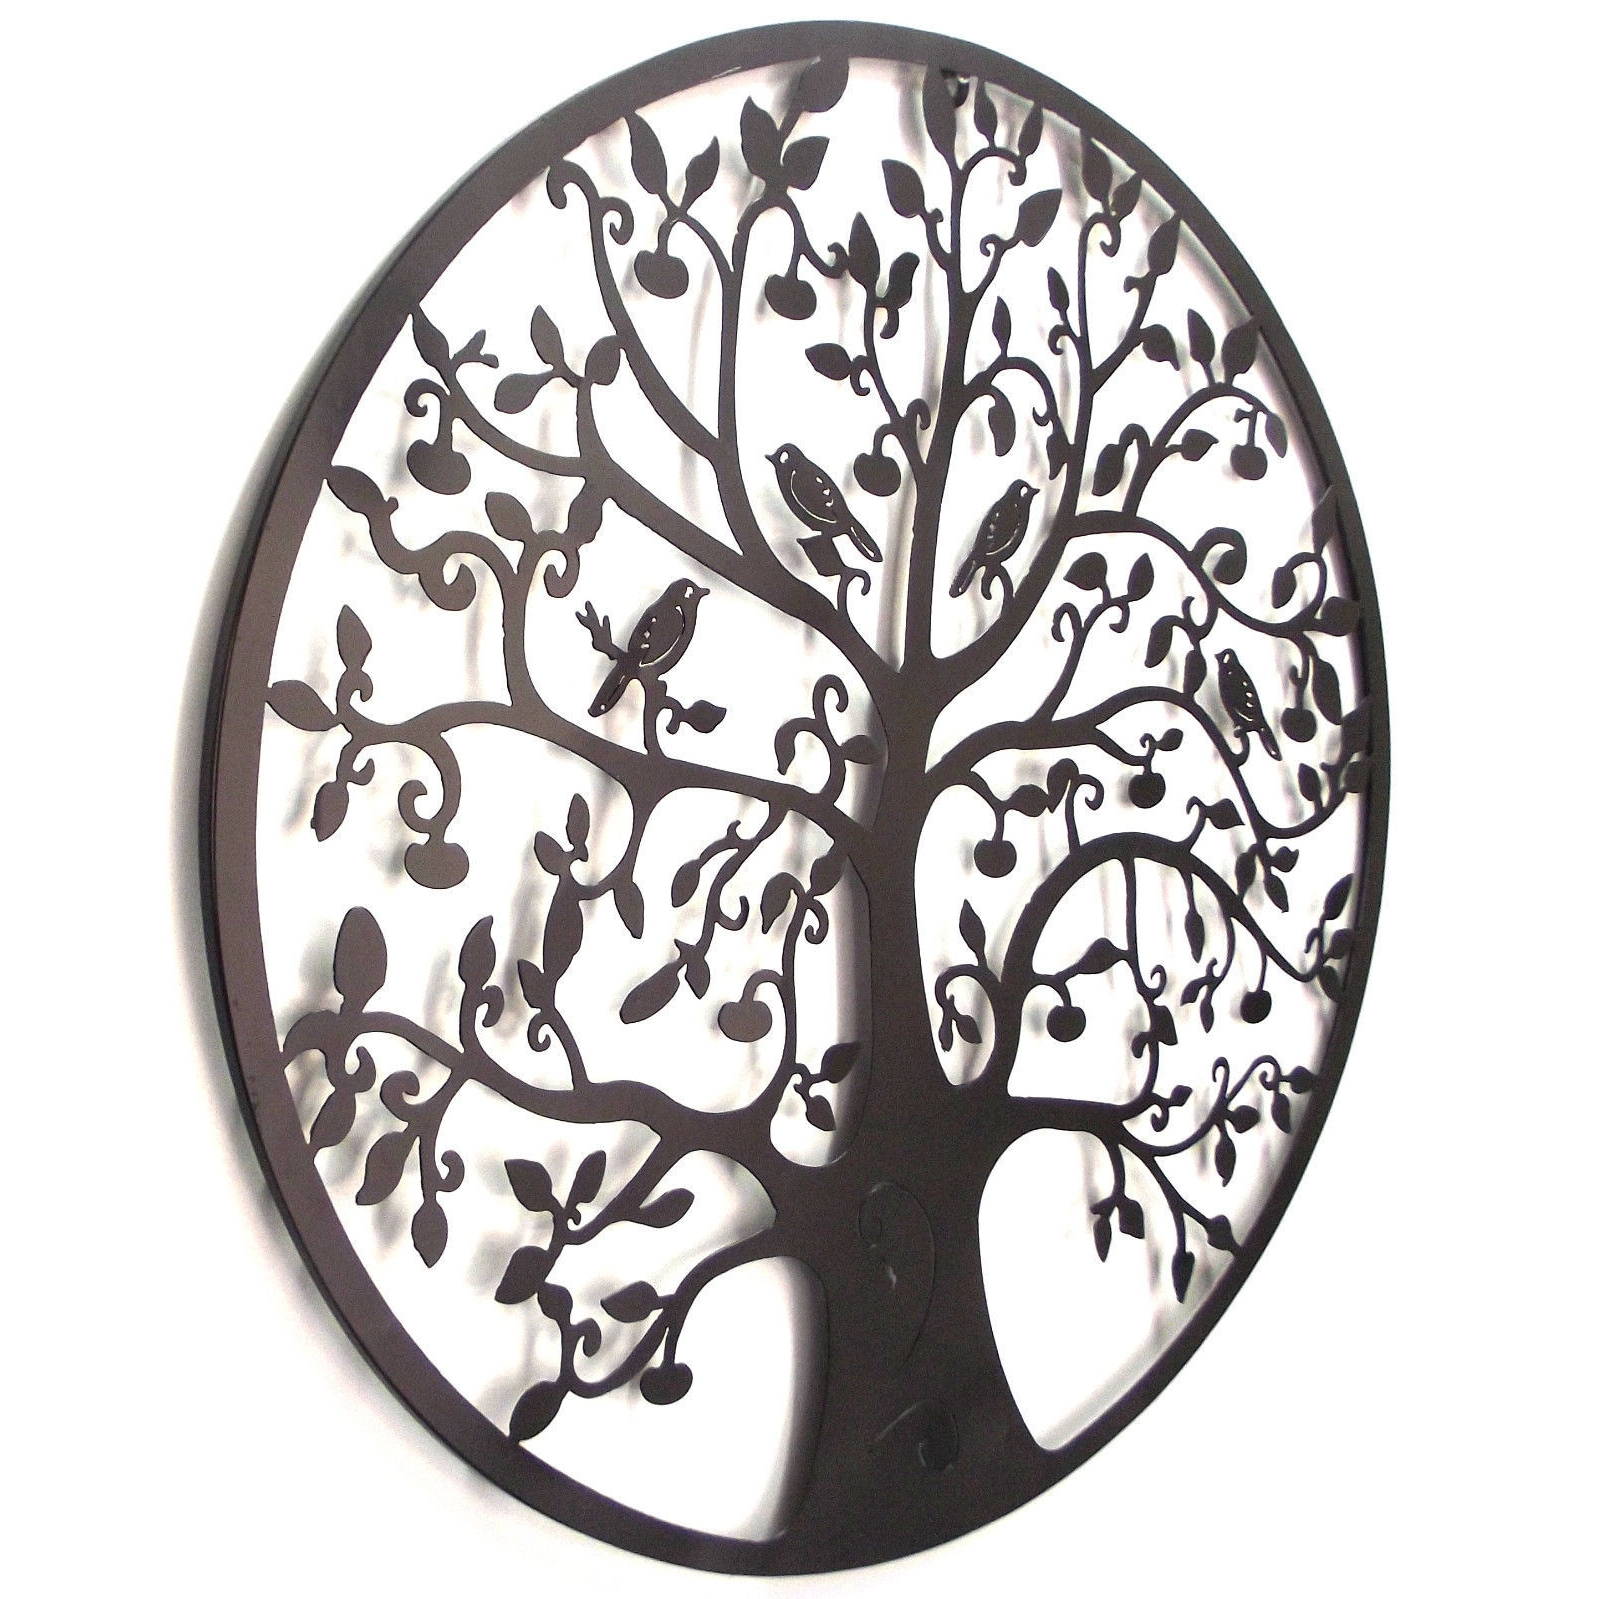 Tree Of Life Metal Wall Art For Most Recent Black Tree Of Life Wall Art Hanging Metal Iron Sculpture Garden Big (View 13 of 20)